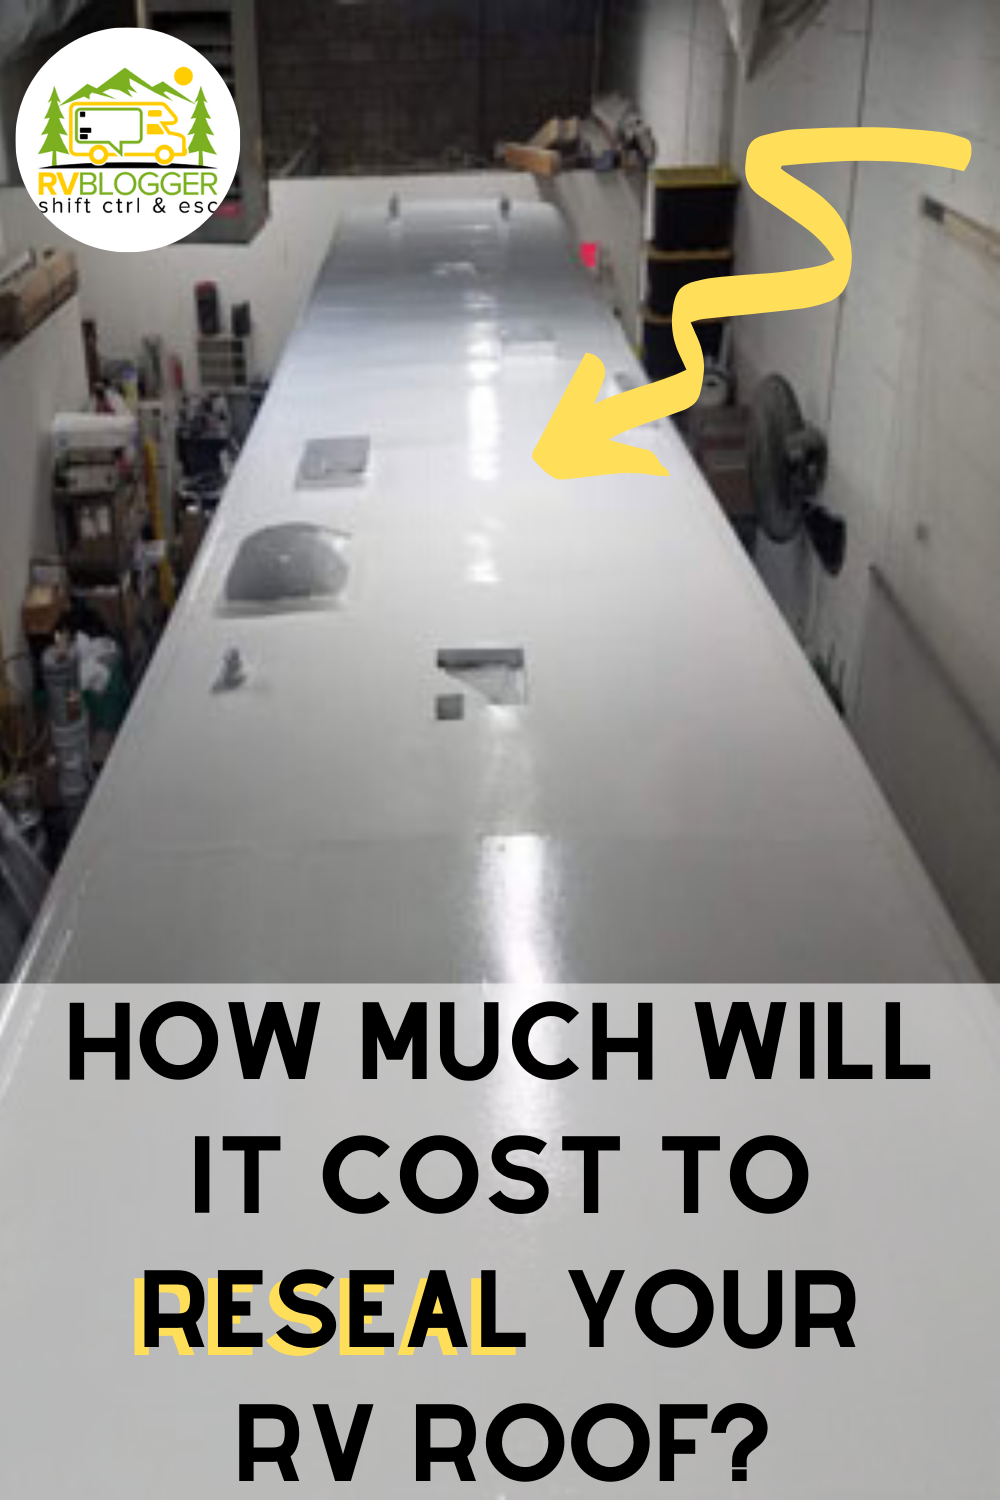 Rv Roof Reseal Cost Rvblogger In 2020 Rv Maintenance Roof Sealant Rv